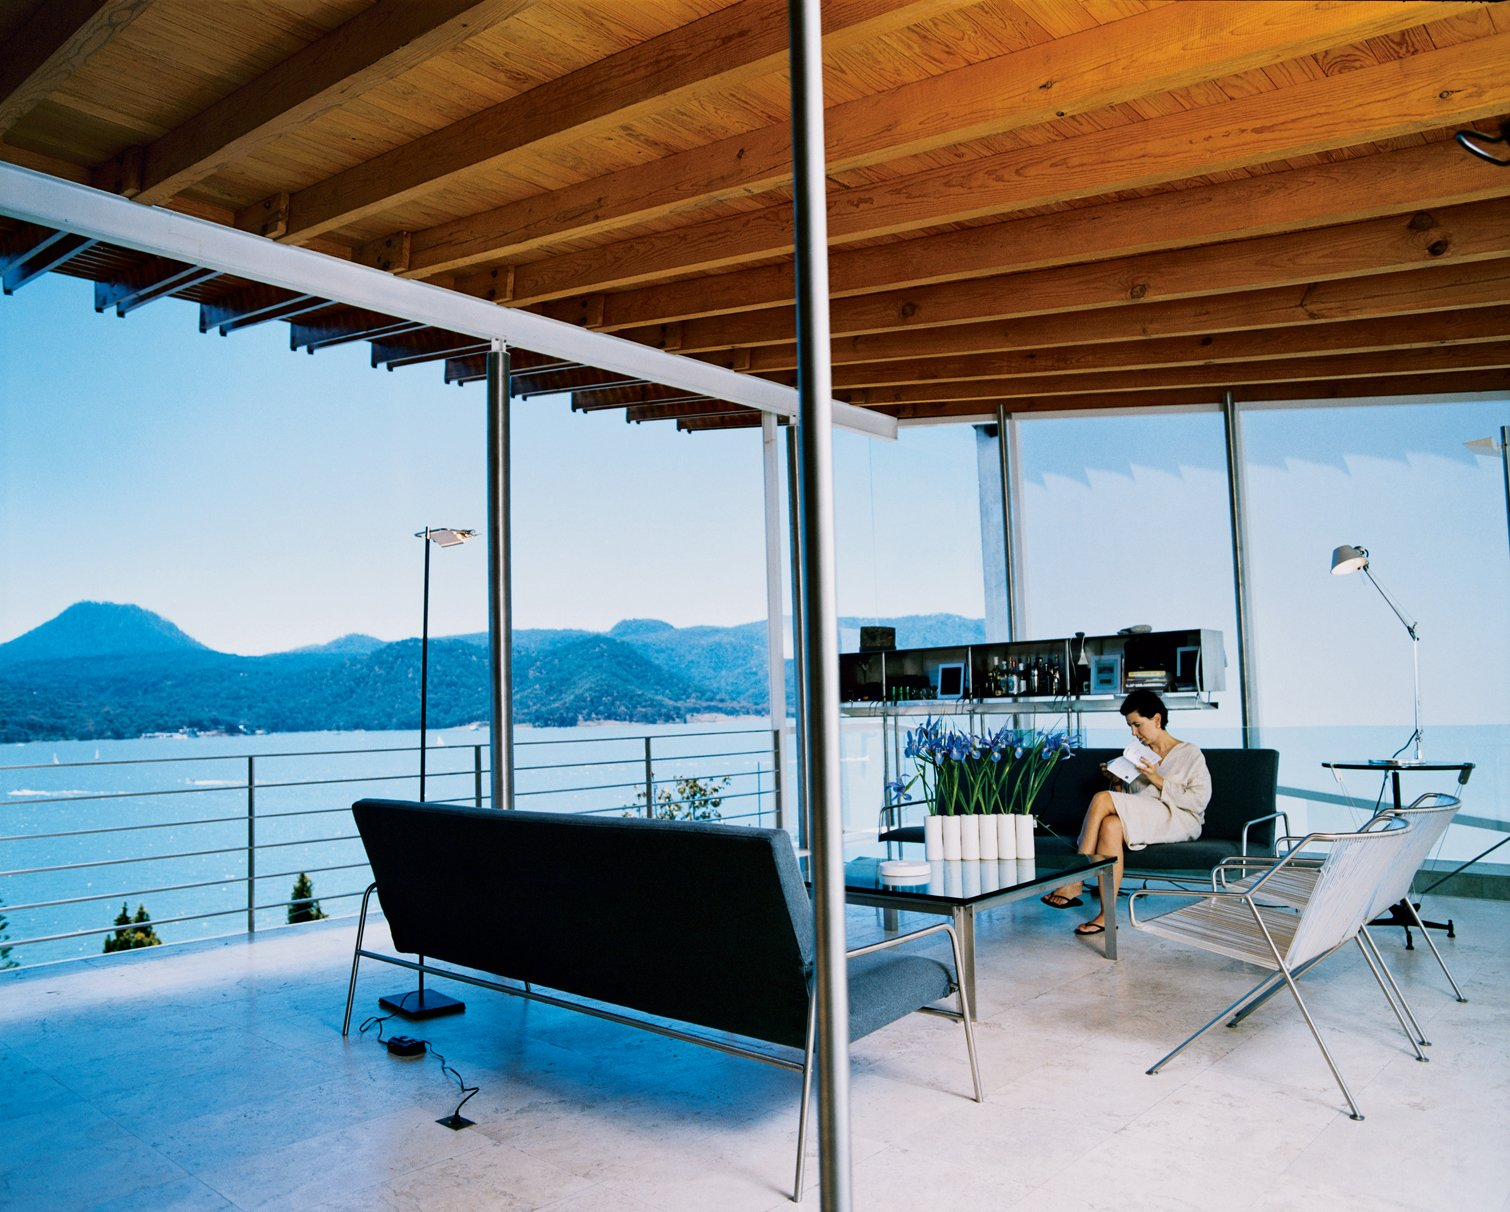 Loredana Dall' Amico reads in the living room, where all the seating was designed by her husband. The floating stainless steel unit behind her is also his design and contains a state-of-the-art stereo system.  Photo 4 of 10 in Reflections on a Lake